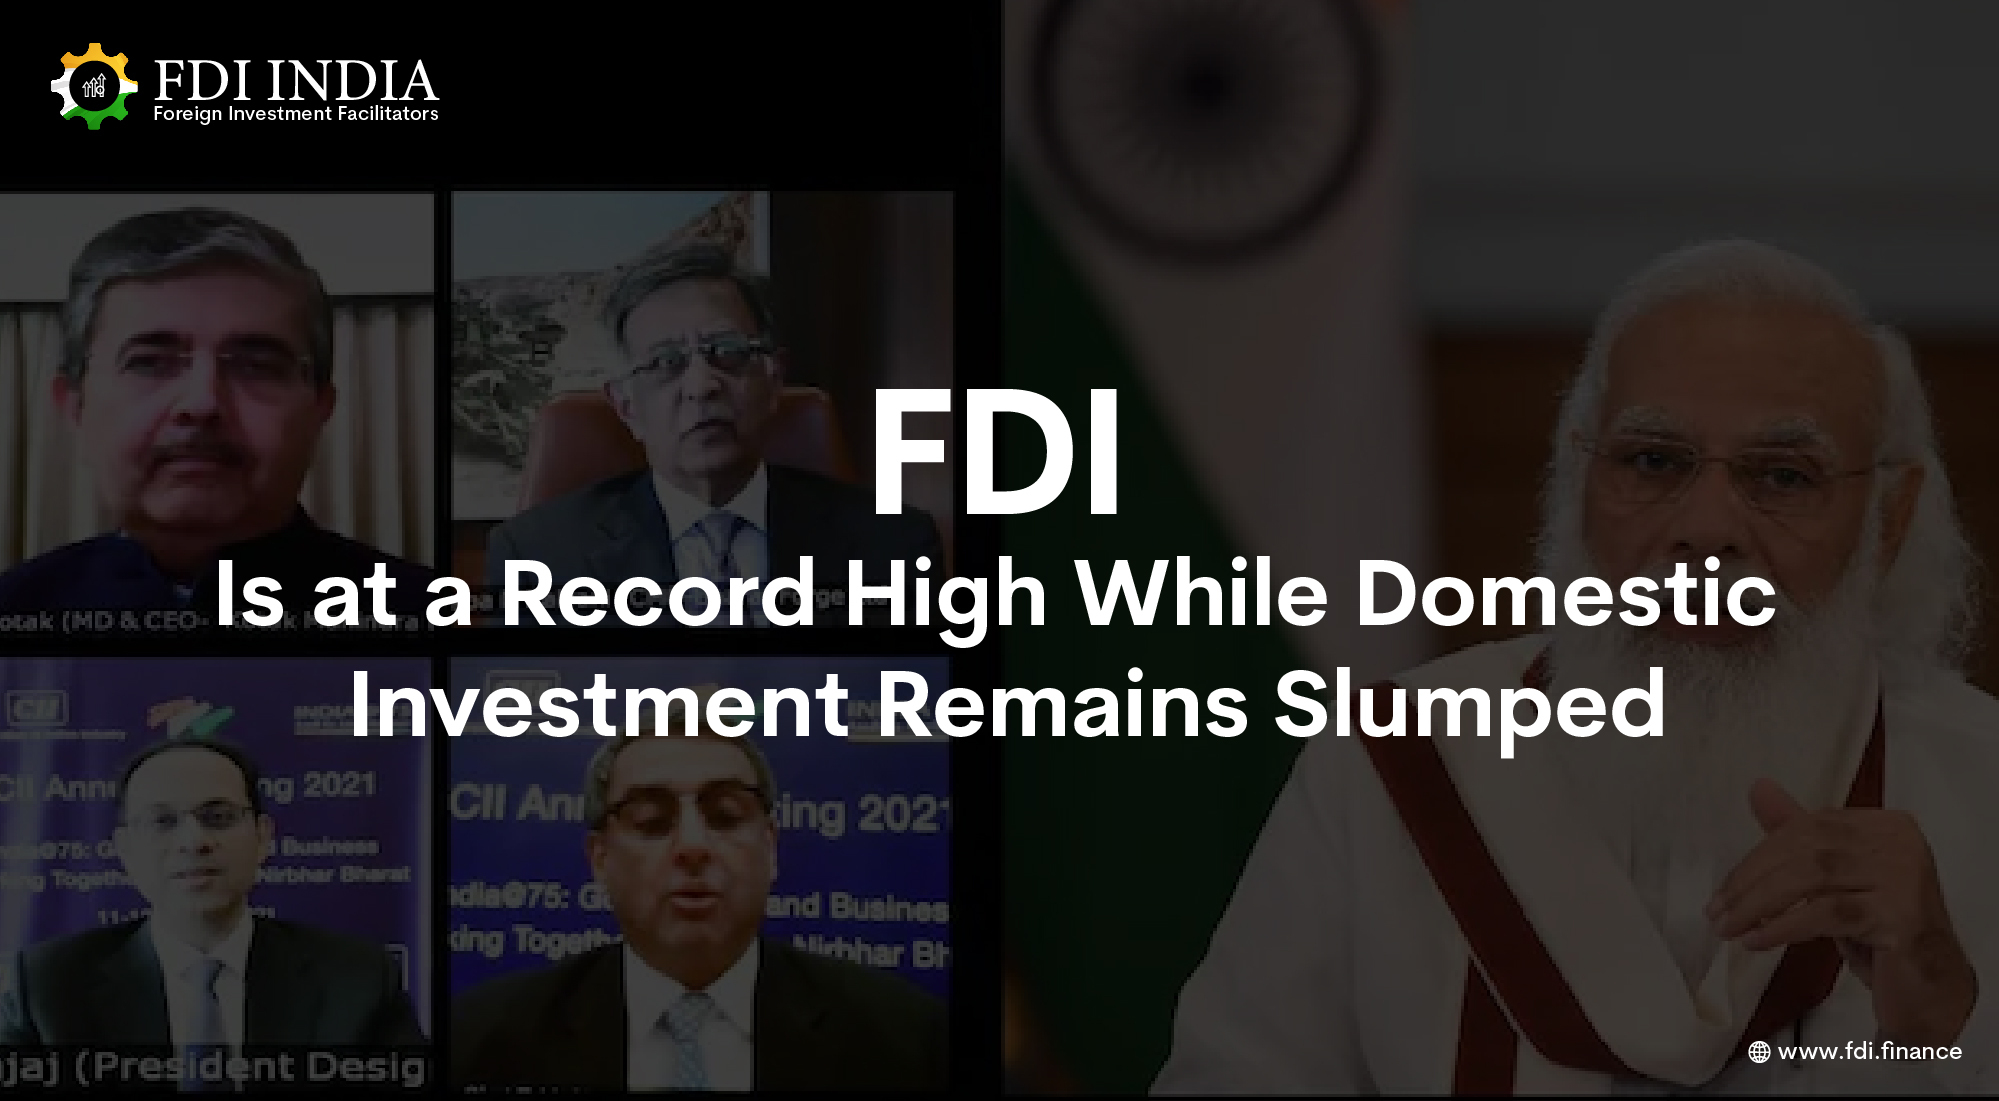 FDI Is at a Record High While Domestic Investment Remains Slumped